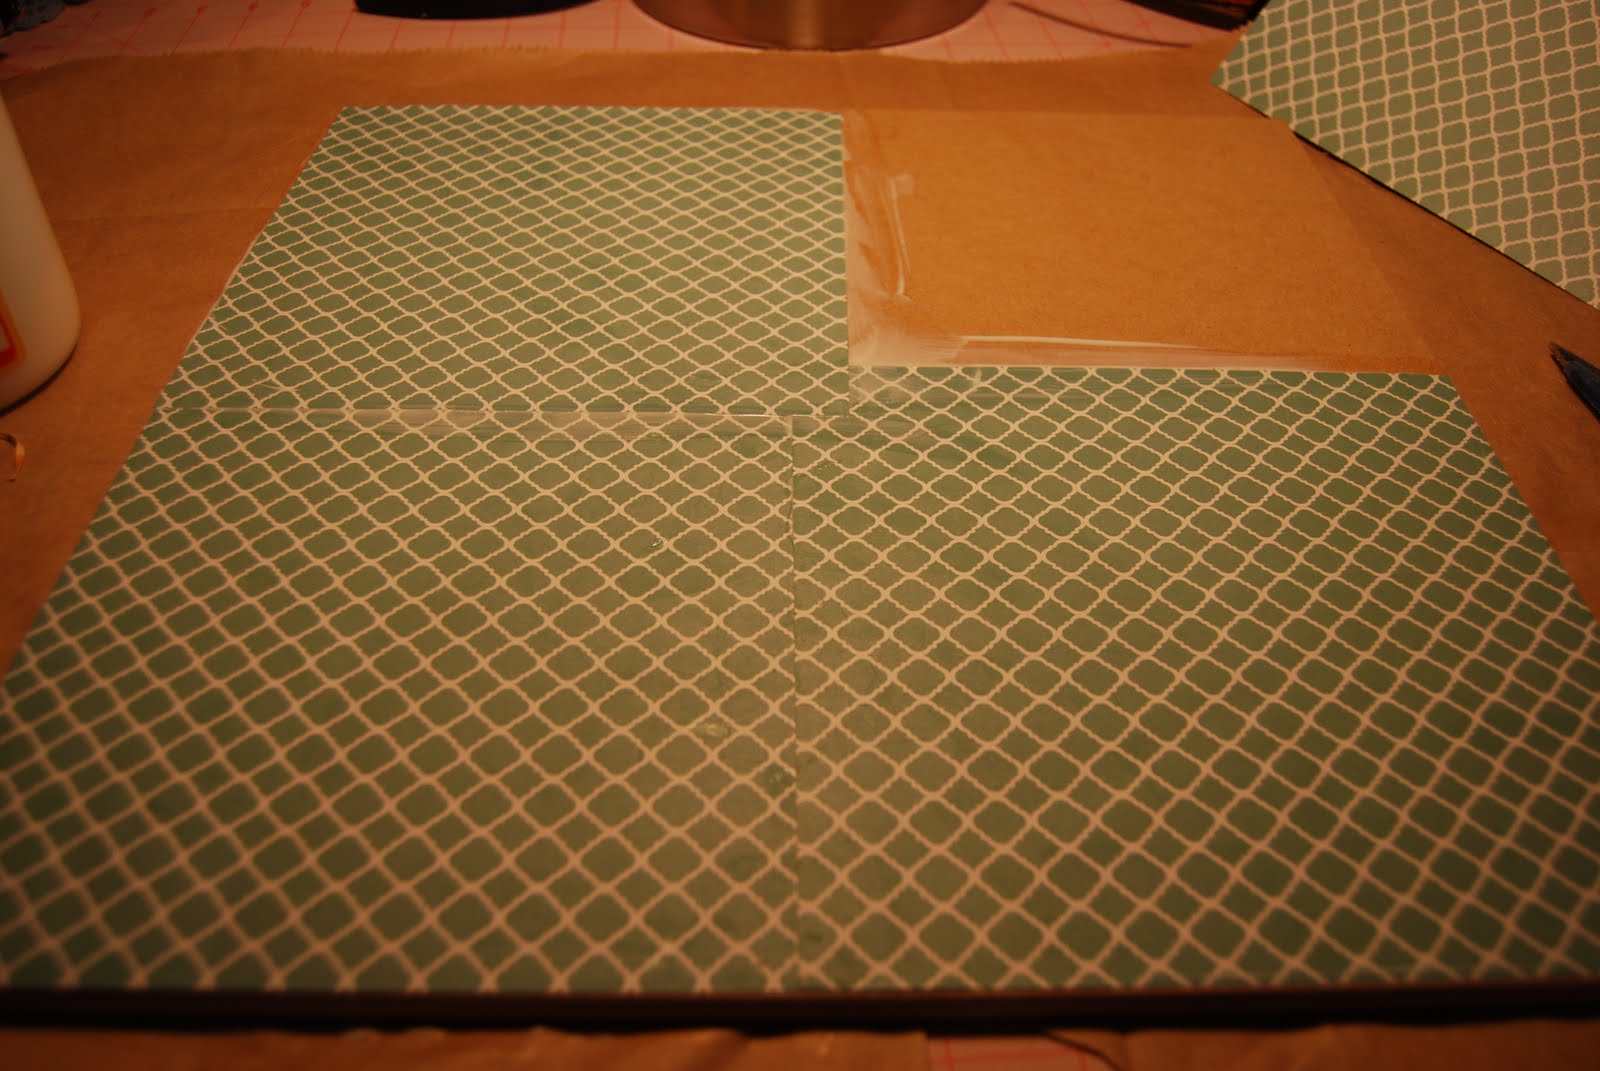 How to put scrapbook paper on wood - Put A Layer Of Mod Podge On The Back Of Your Scrapbook Paper Then Put A Layer Directly On The Canvas Or Board Place The Paper On The Board And Smooth It